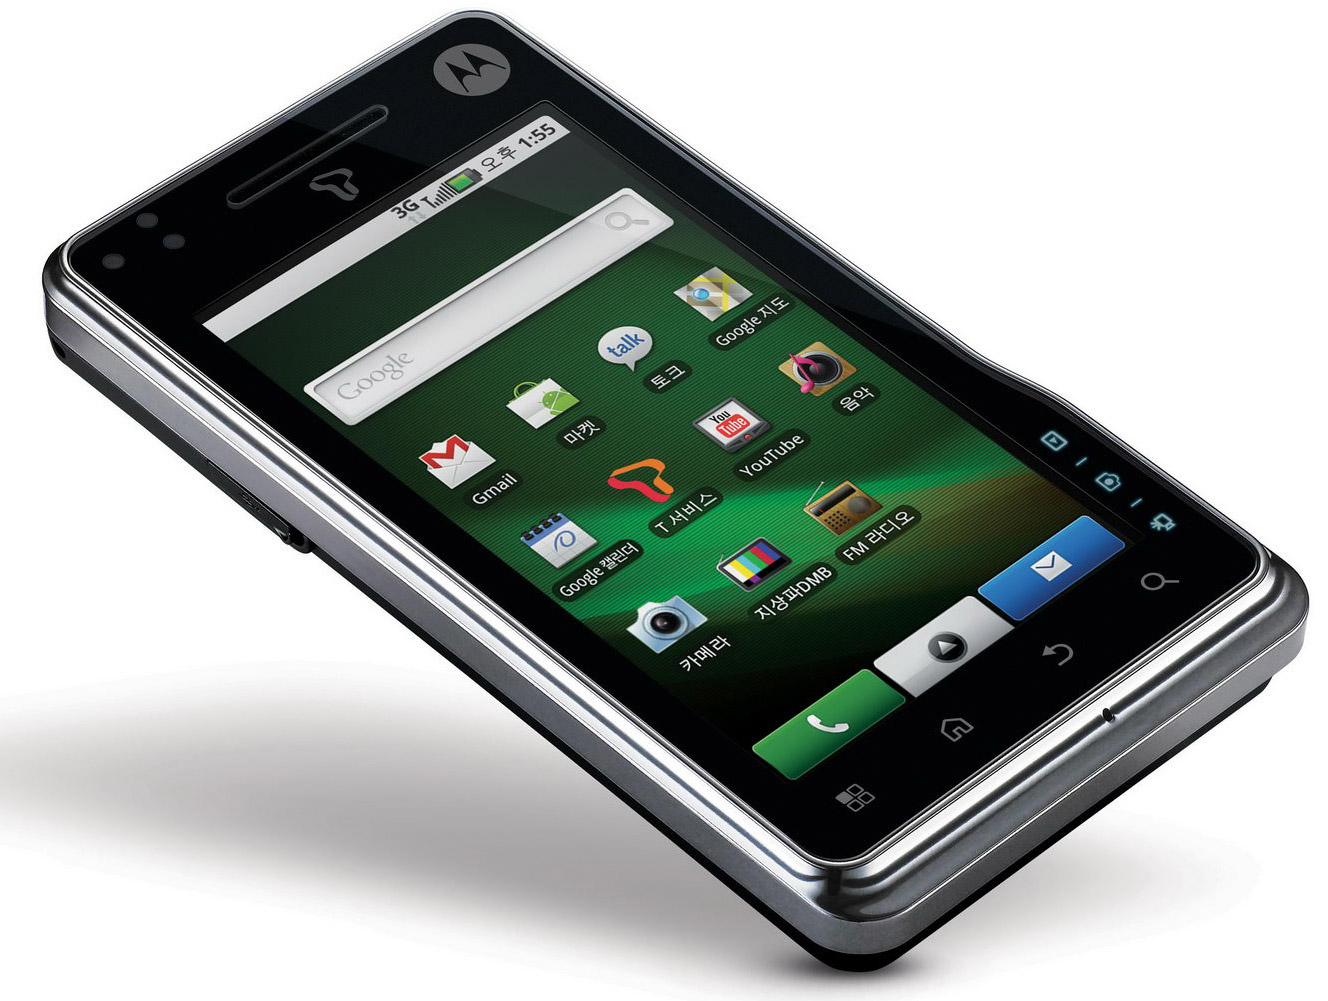 Motorola Xt720 Motoroi Specs And Price Phonegg